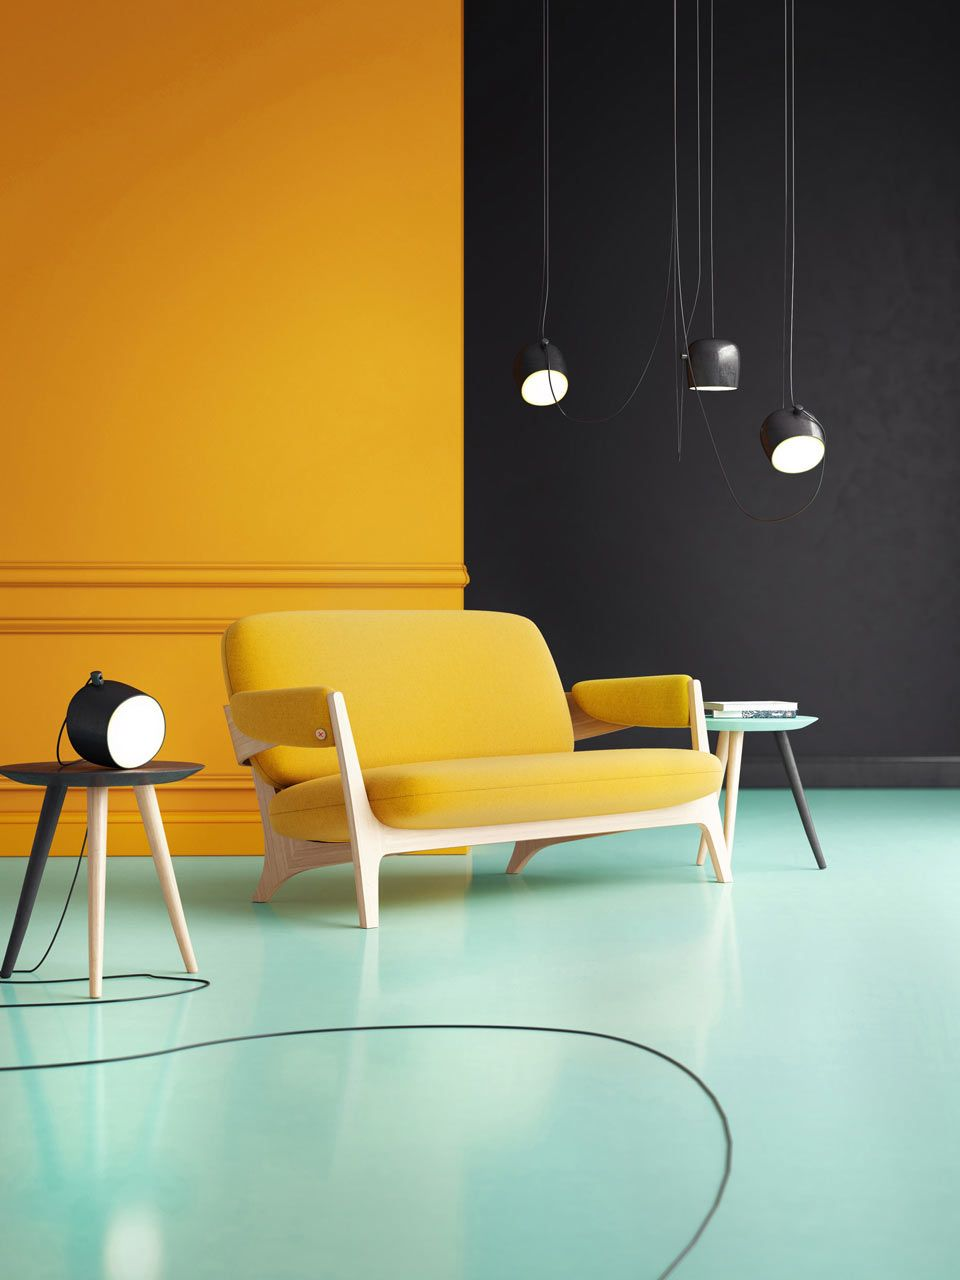 Candy brings a fresh approach to seating design for Mobilya design